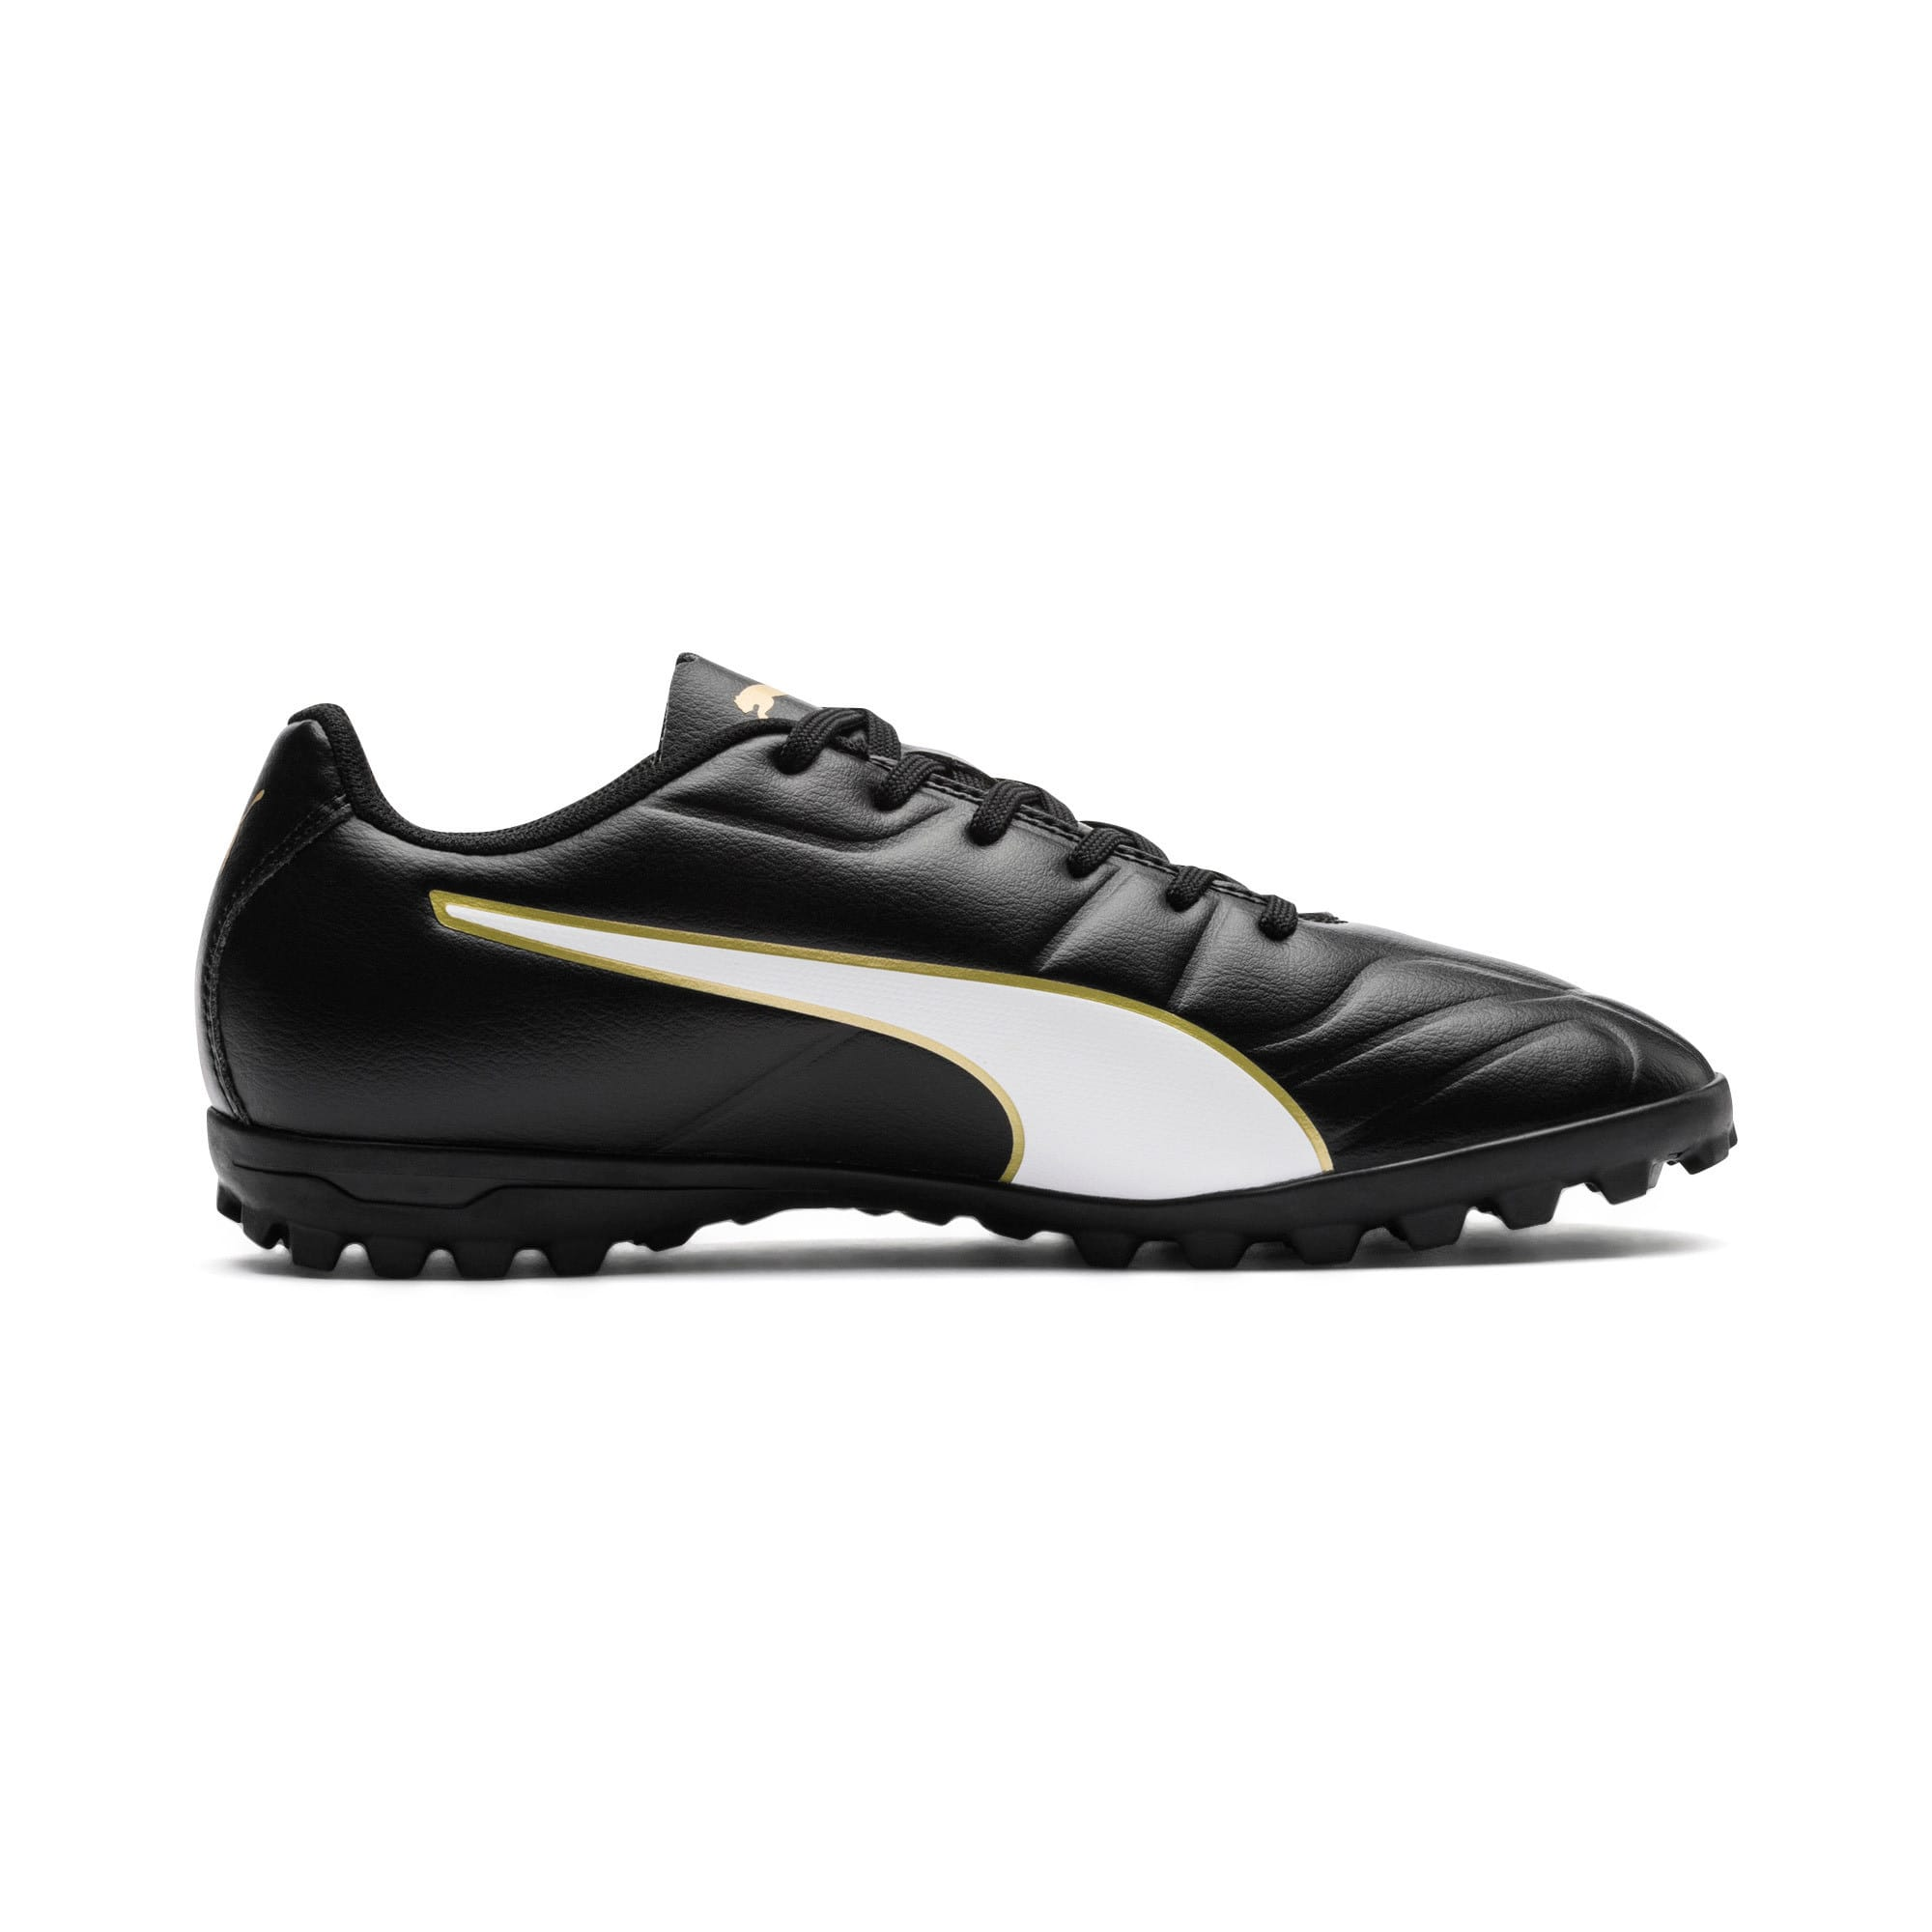 Thumbnail 5 of Classico C II TT Youth Football Boots, Black-White-Gold, medium-IND